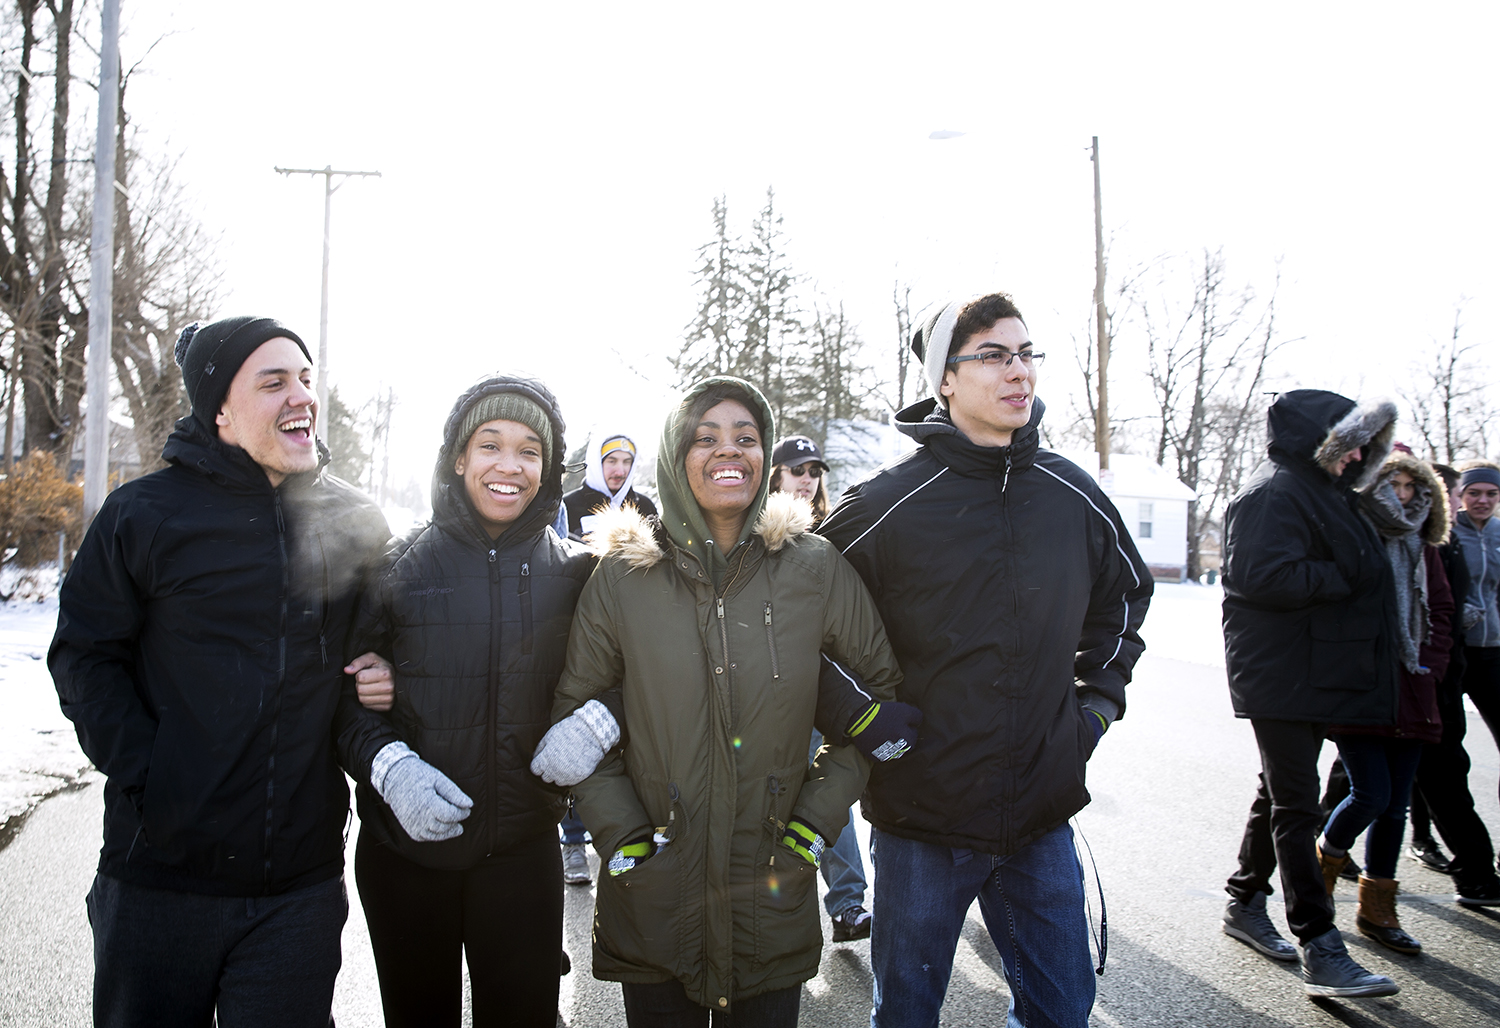 Ben Paoletti, left, Jocelyn Nelson, Erishon Williams and Eric Loera, all students at the University of Illinois Springfield, walk in the Martin Luther King Jr. Unity March Monday, Jan. 15, 2018 on Martin Luther King Drive in Springfield, Ill. The march is sponsored by the Springfield NAACP [Rich Saal/The State Journal-Register]